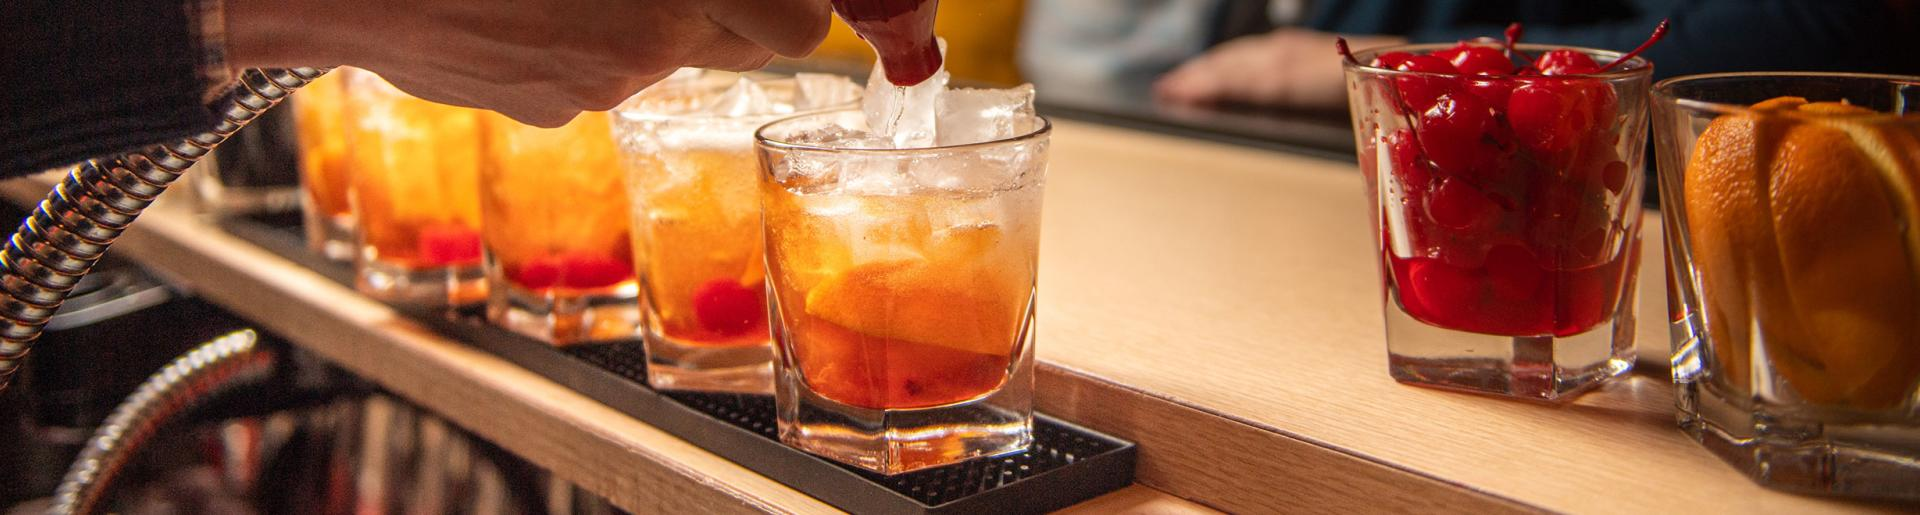 A bartender makes an Old Fashioned cocktail